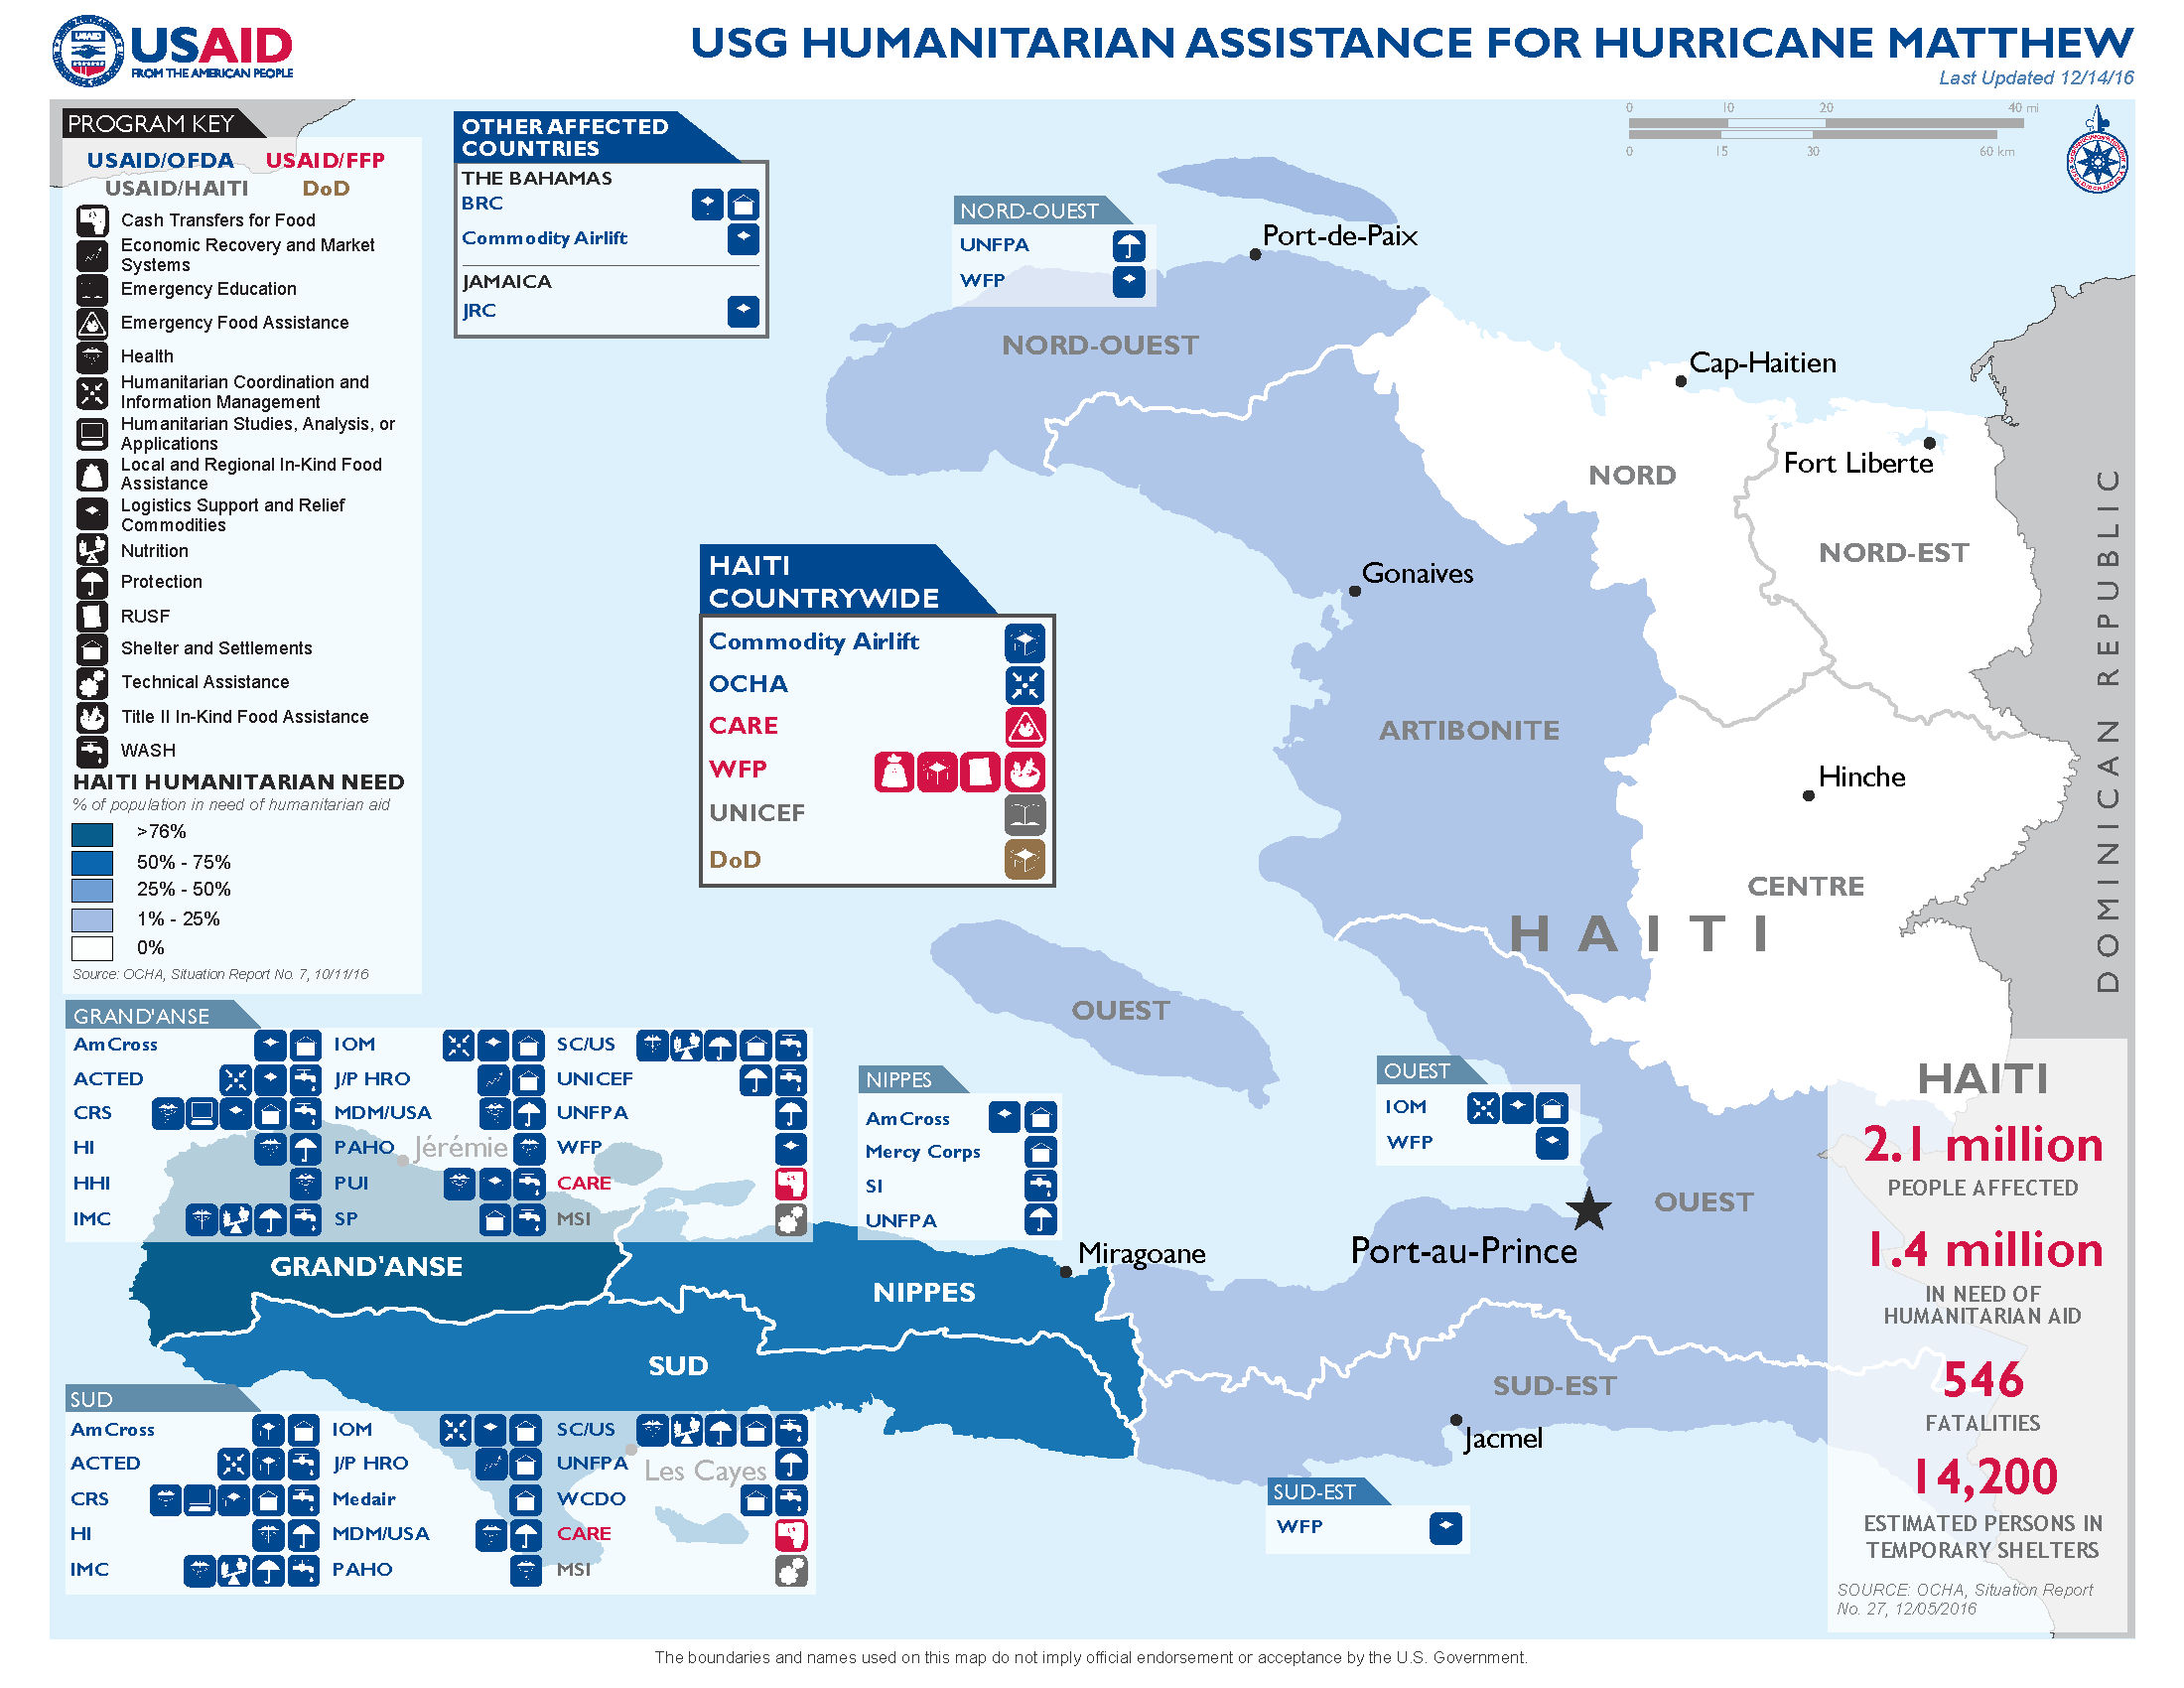 Map: USG Humanitarian Assistance for Hurricane Matthew - December 14, 2016